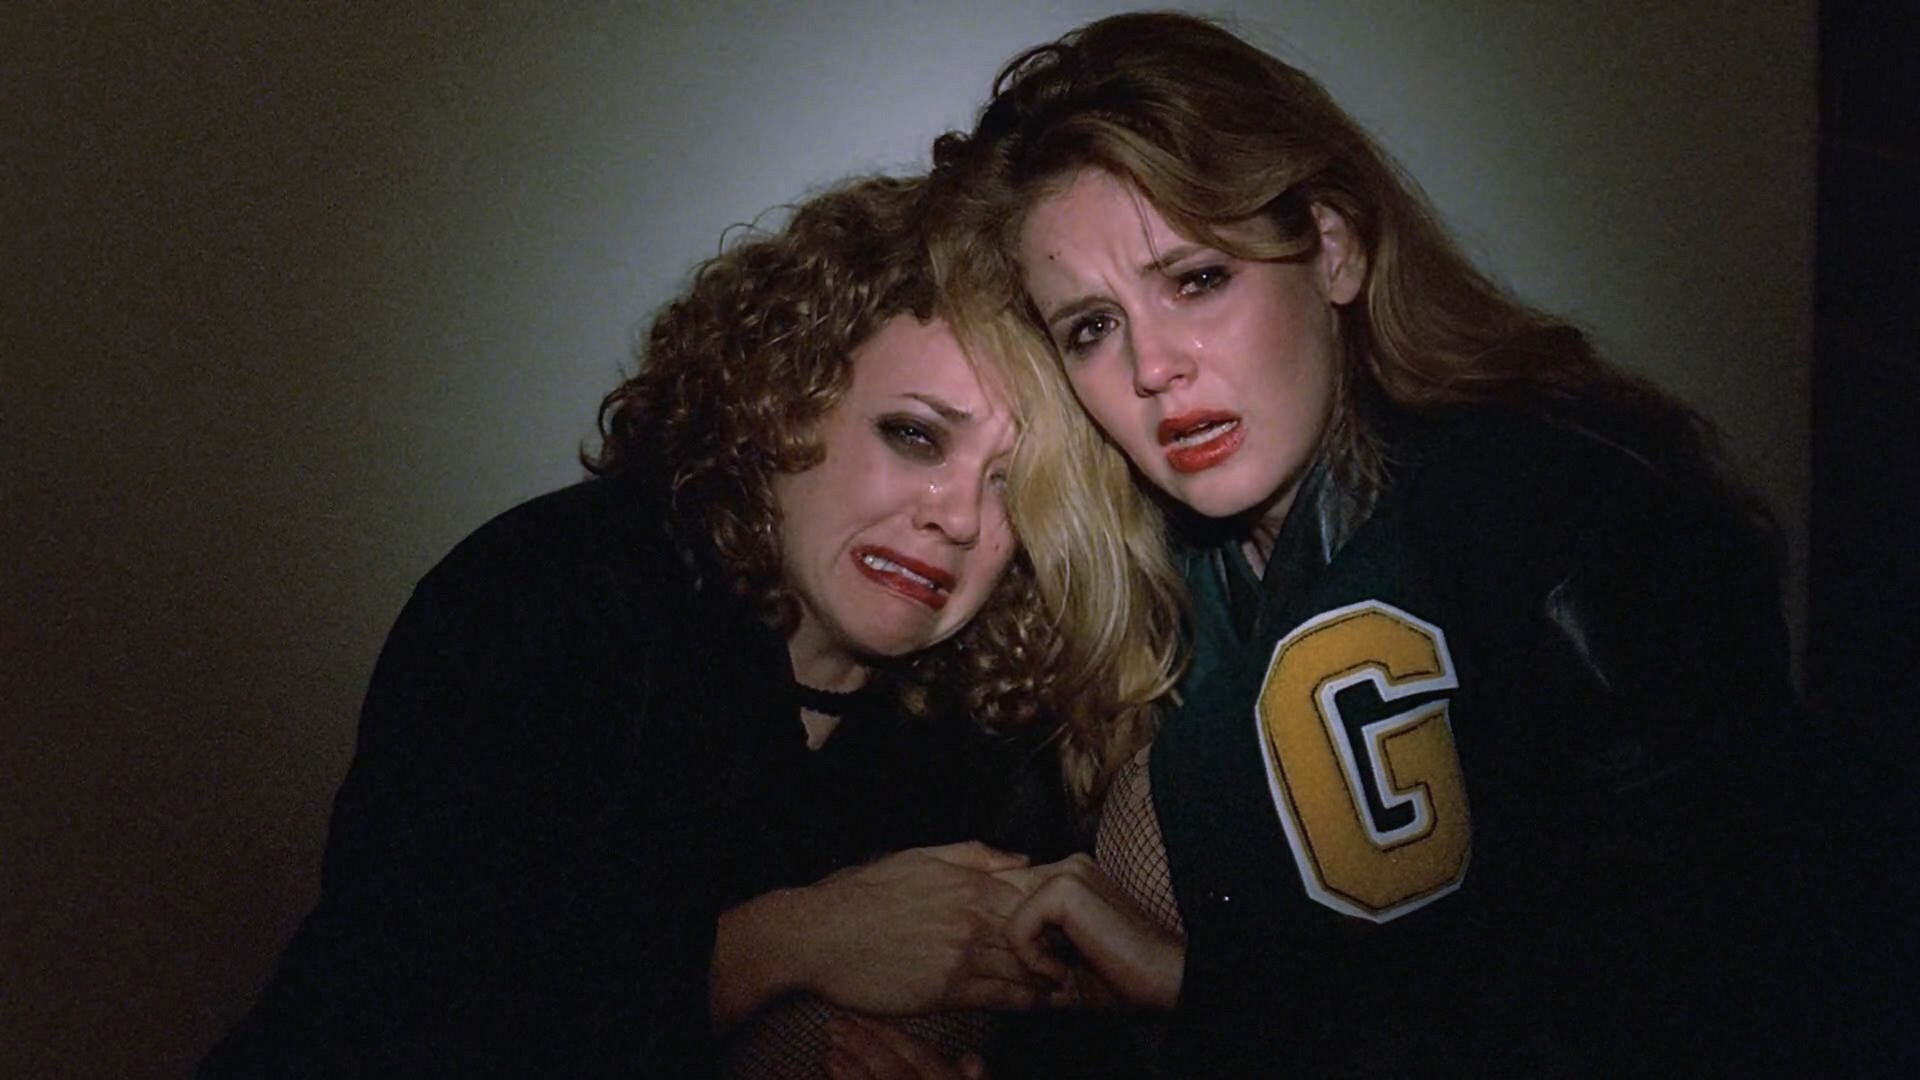 Wendy Benson-Landes and Lisa Robin Kelly in The X Files (1993)